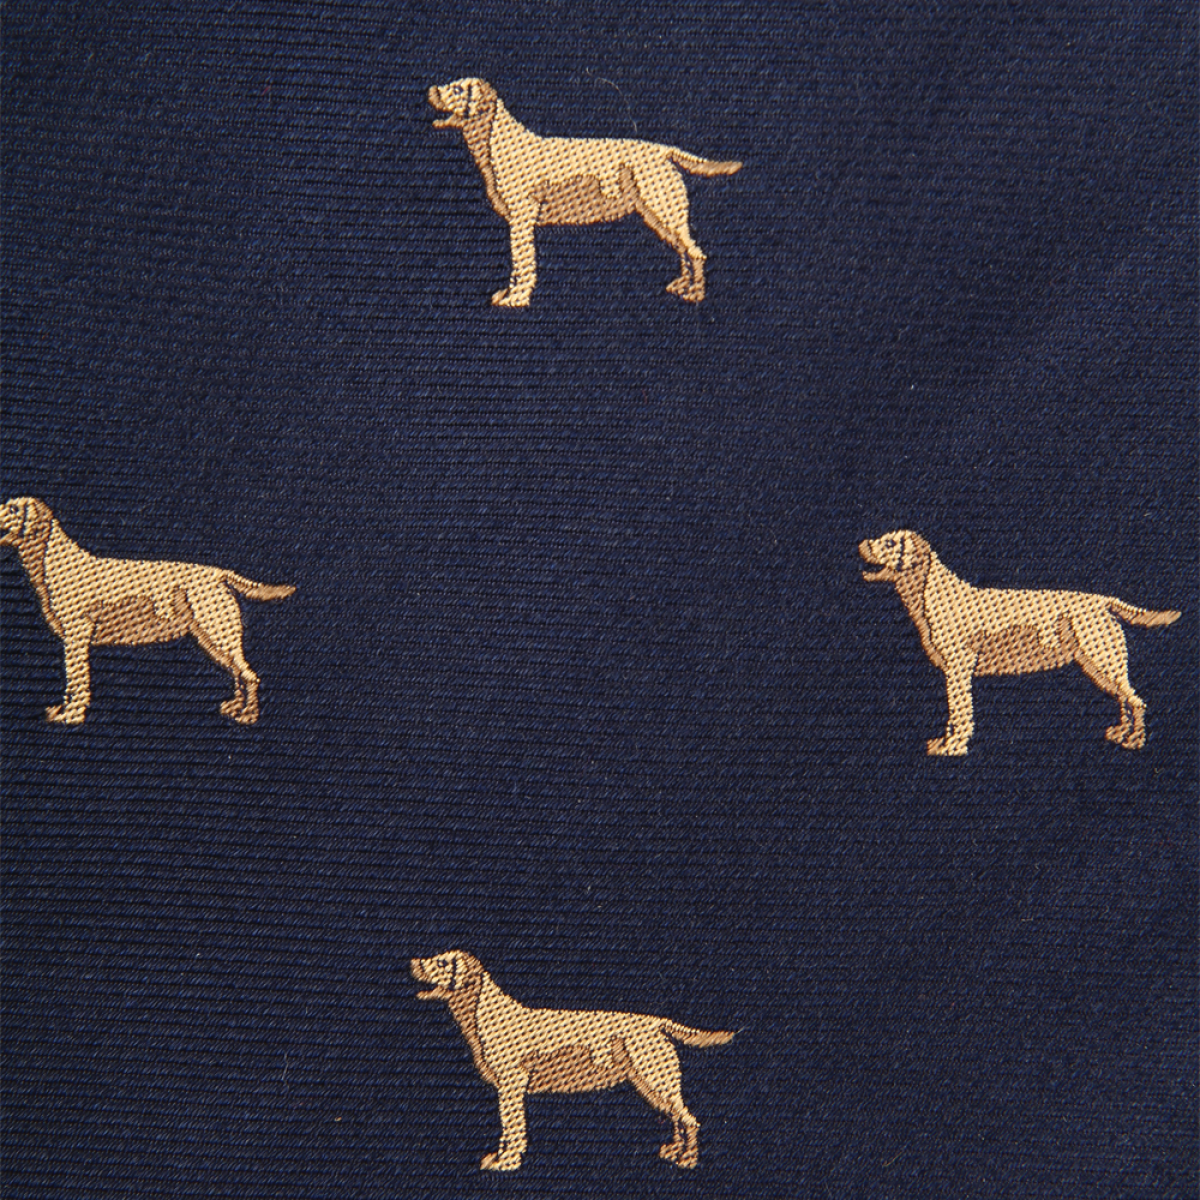 Woven Yellow Lab Gent - Navy